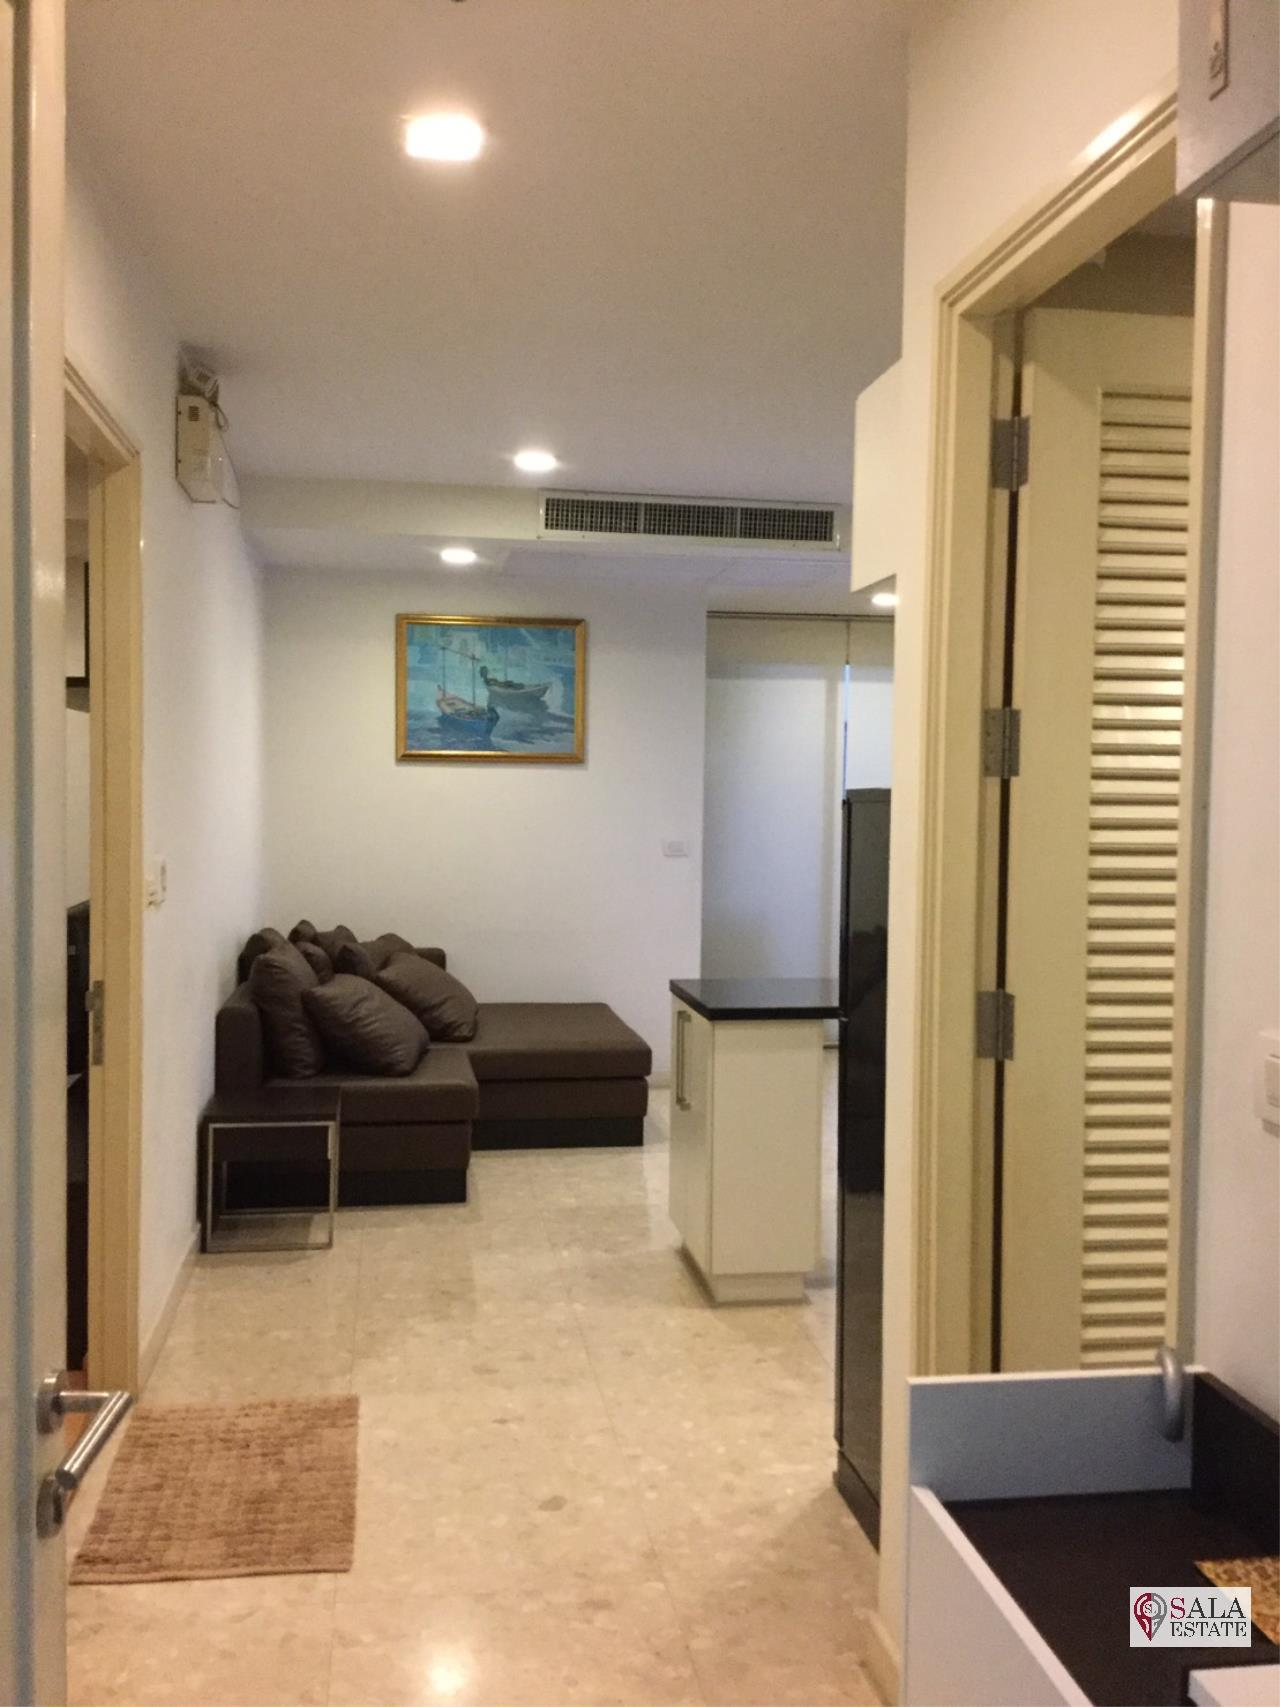 SALA ESTATE Agency's NUSASIRI – BTS EKKAMAI, 2 Bedroom 1 Bathroom, Fully furnished, City View 7